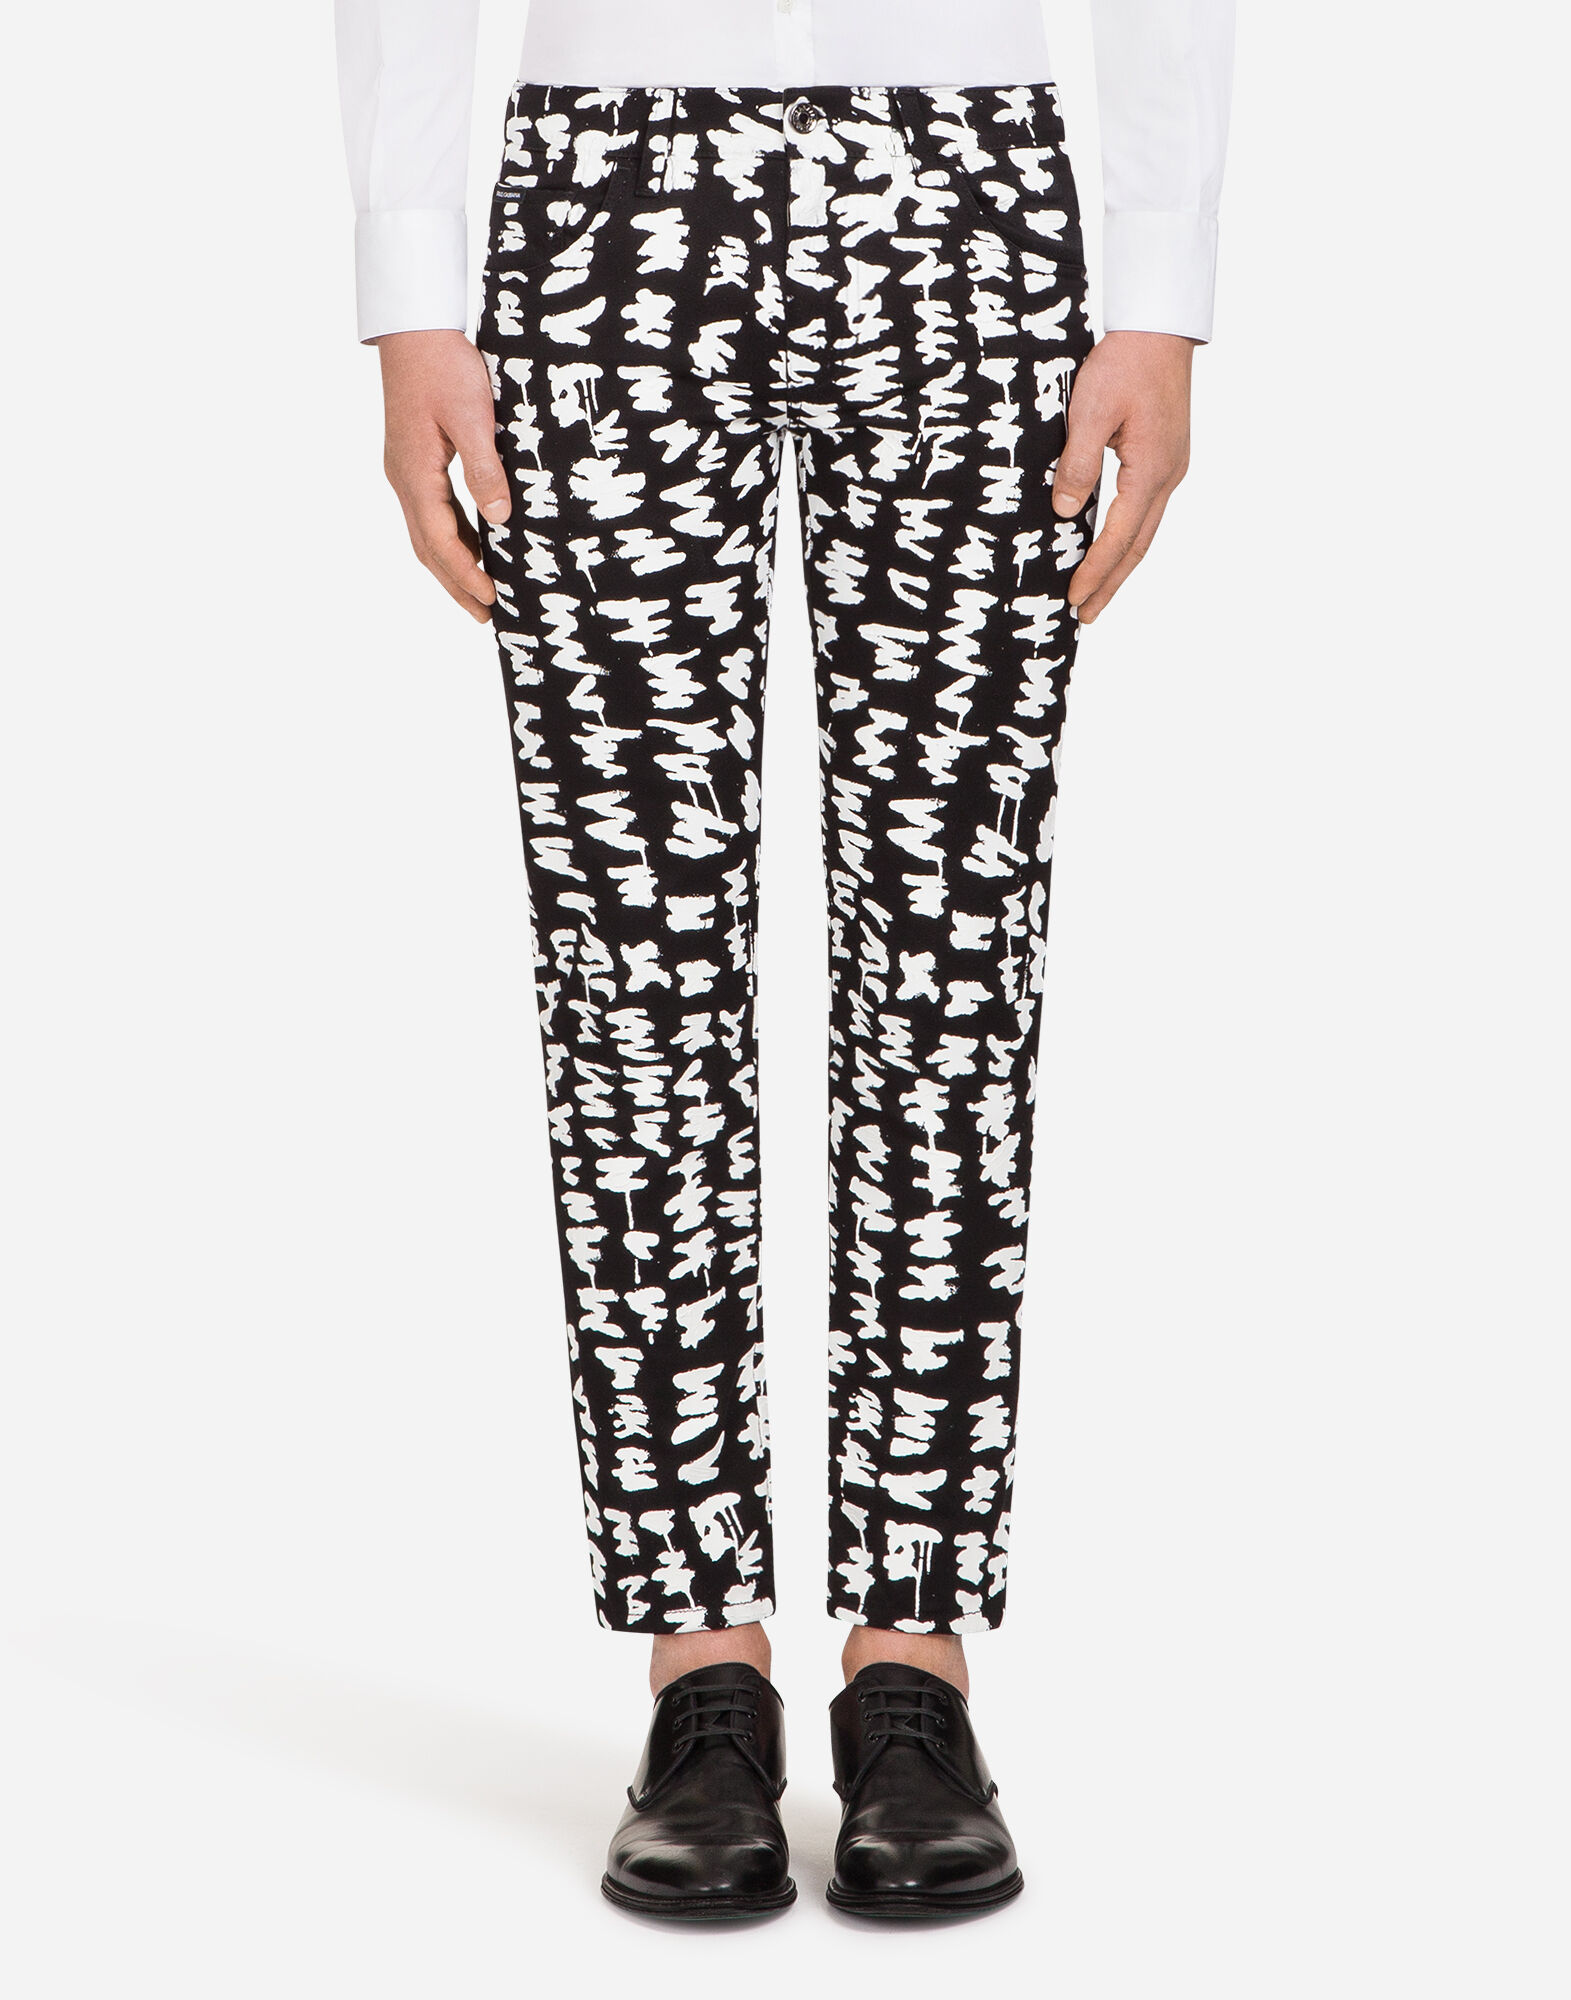 PRINTED CLASSIC FIT JEANS from DOLCE & GABBANA